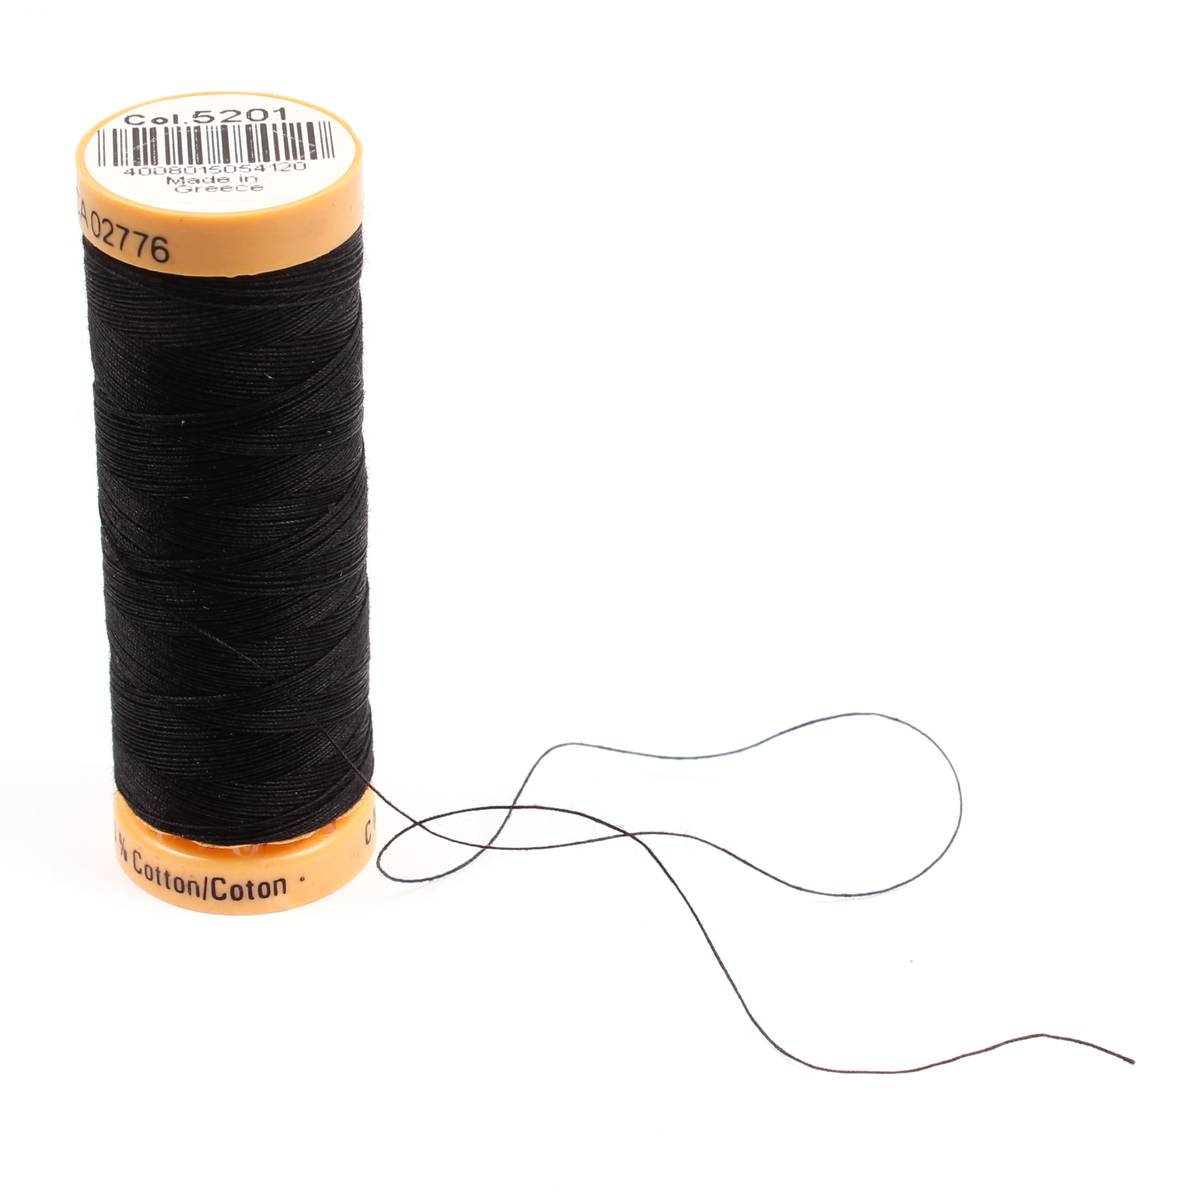 Gutermann Black Thread G5201 - 100% Cotton - 50wt - Sewing Thread - All Purpose - Domestic